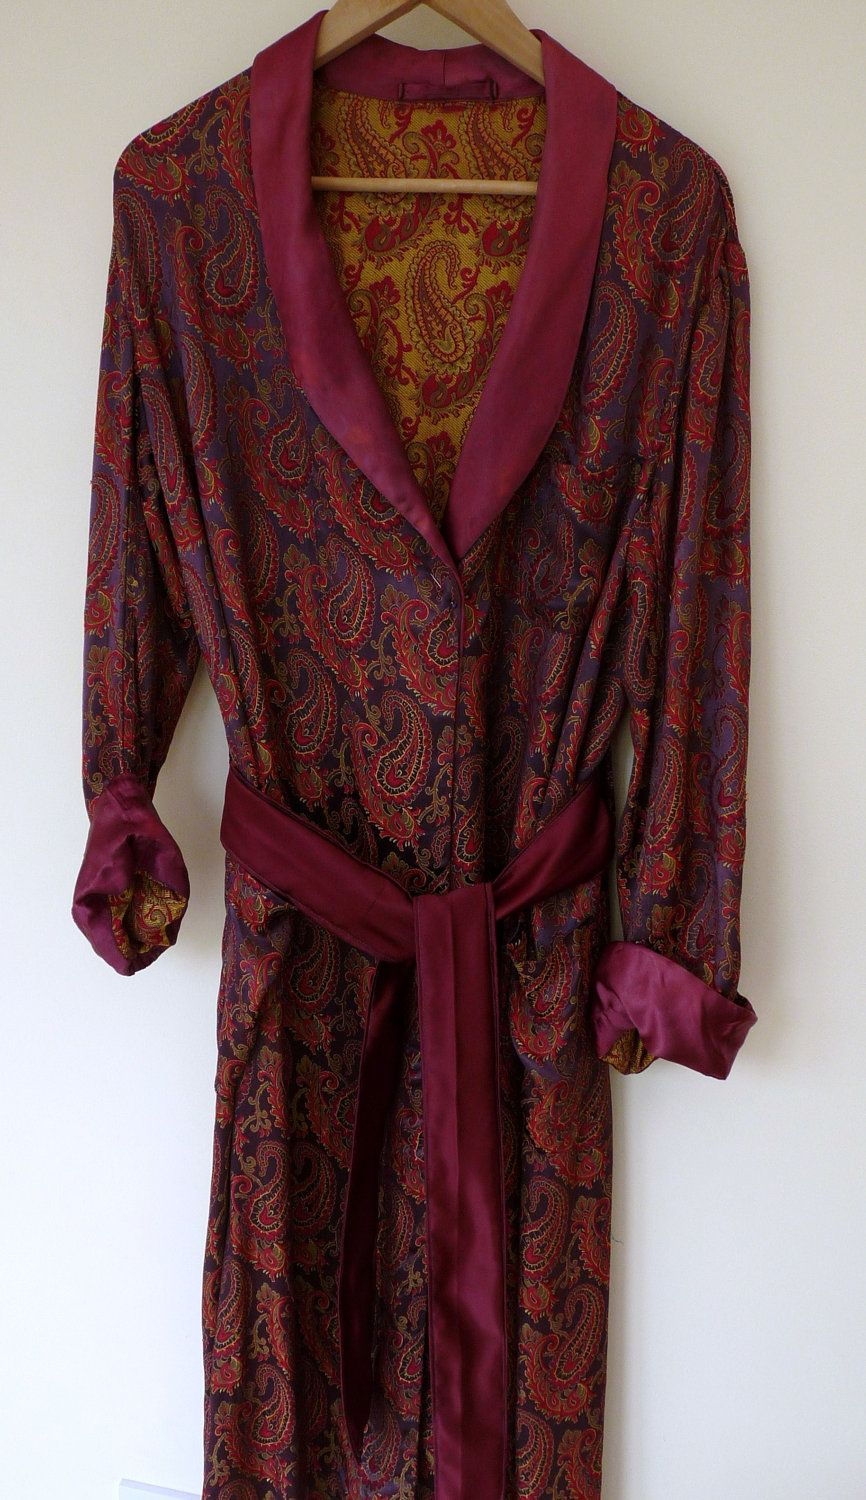 Vintage Paisley Satin Dressing Gown Smoking Jacket 1950s